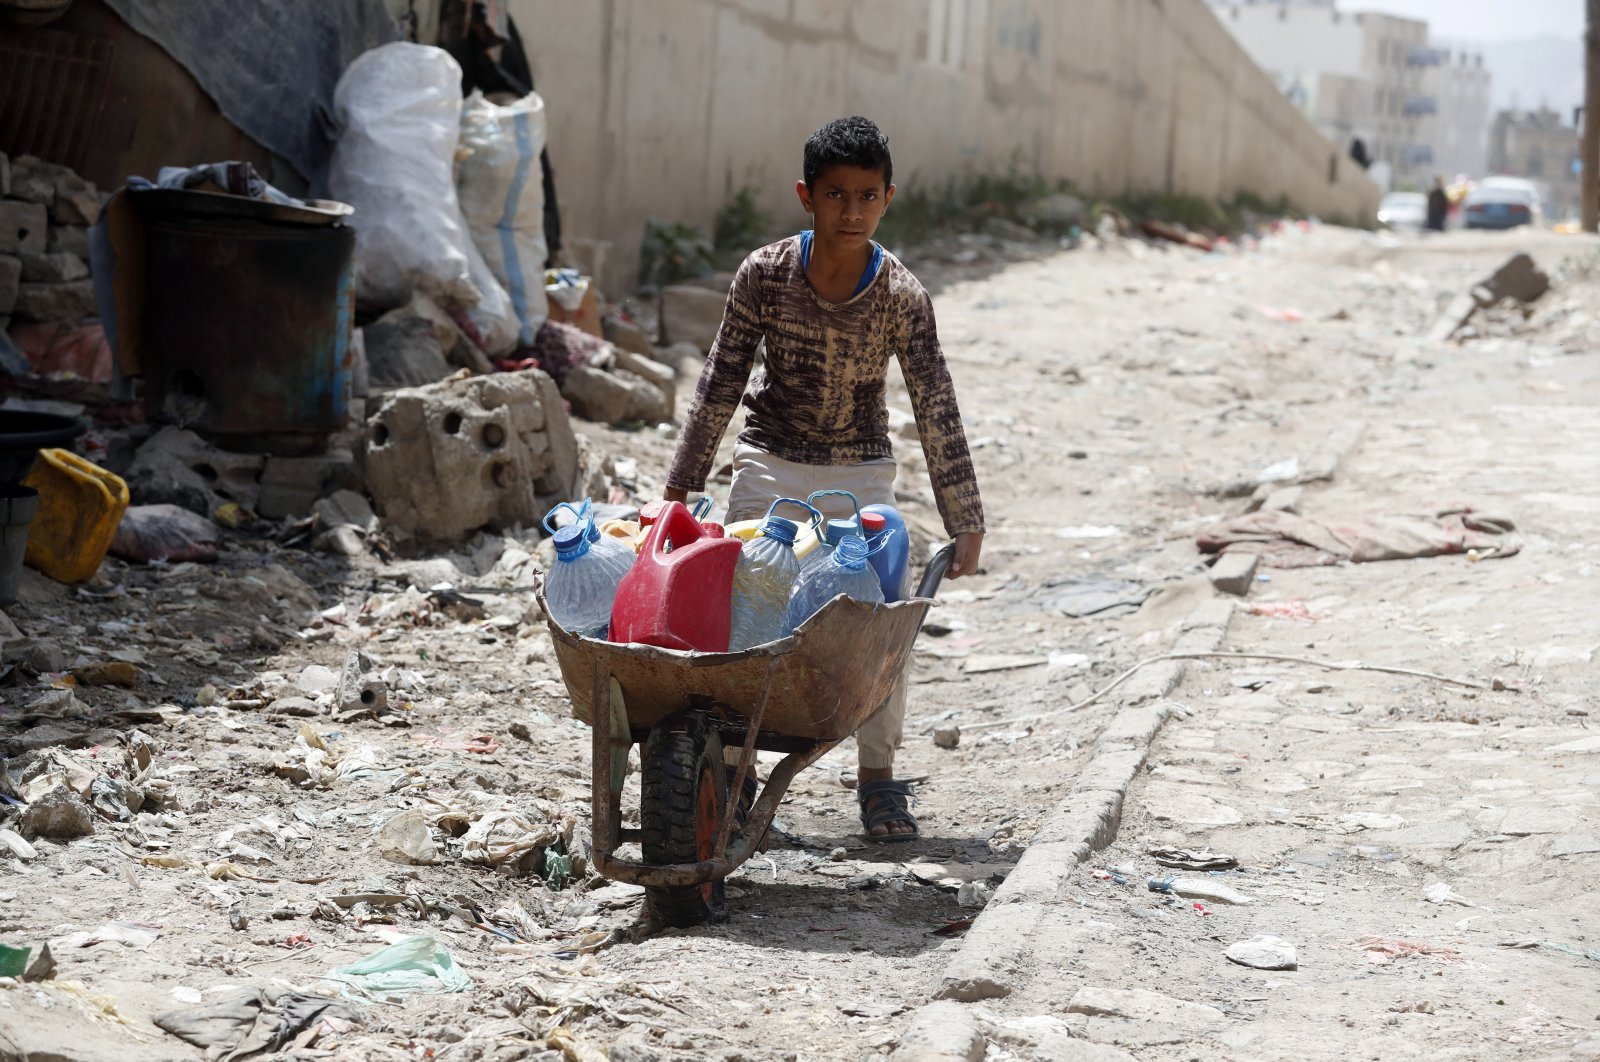 A young boy pushes a wheelbarrow with water bottles after filling them from a charity tap, in Sanaa, Yemen, June 18, 2020. (EPA Photo)